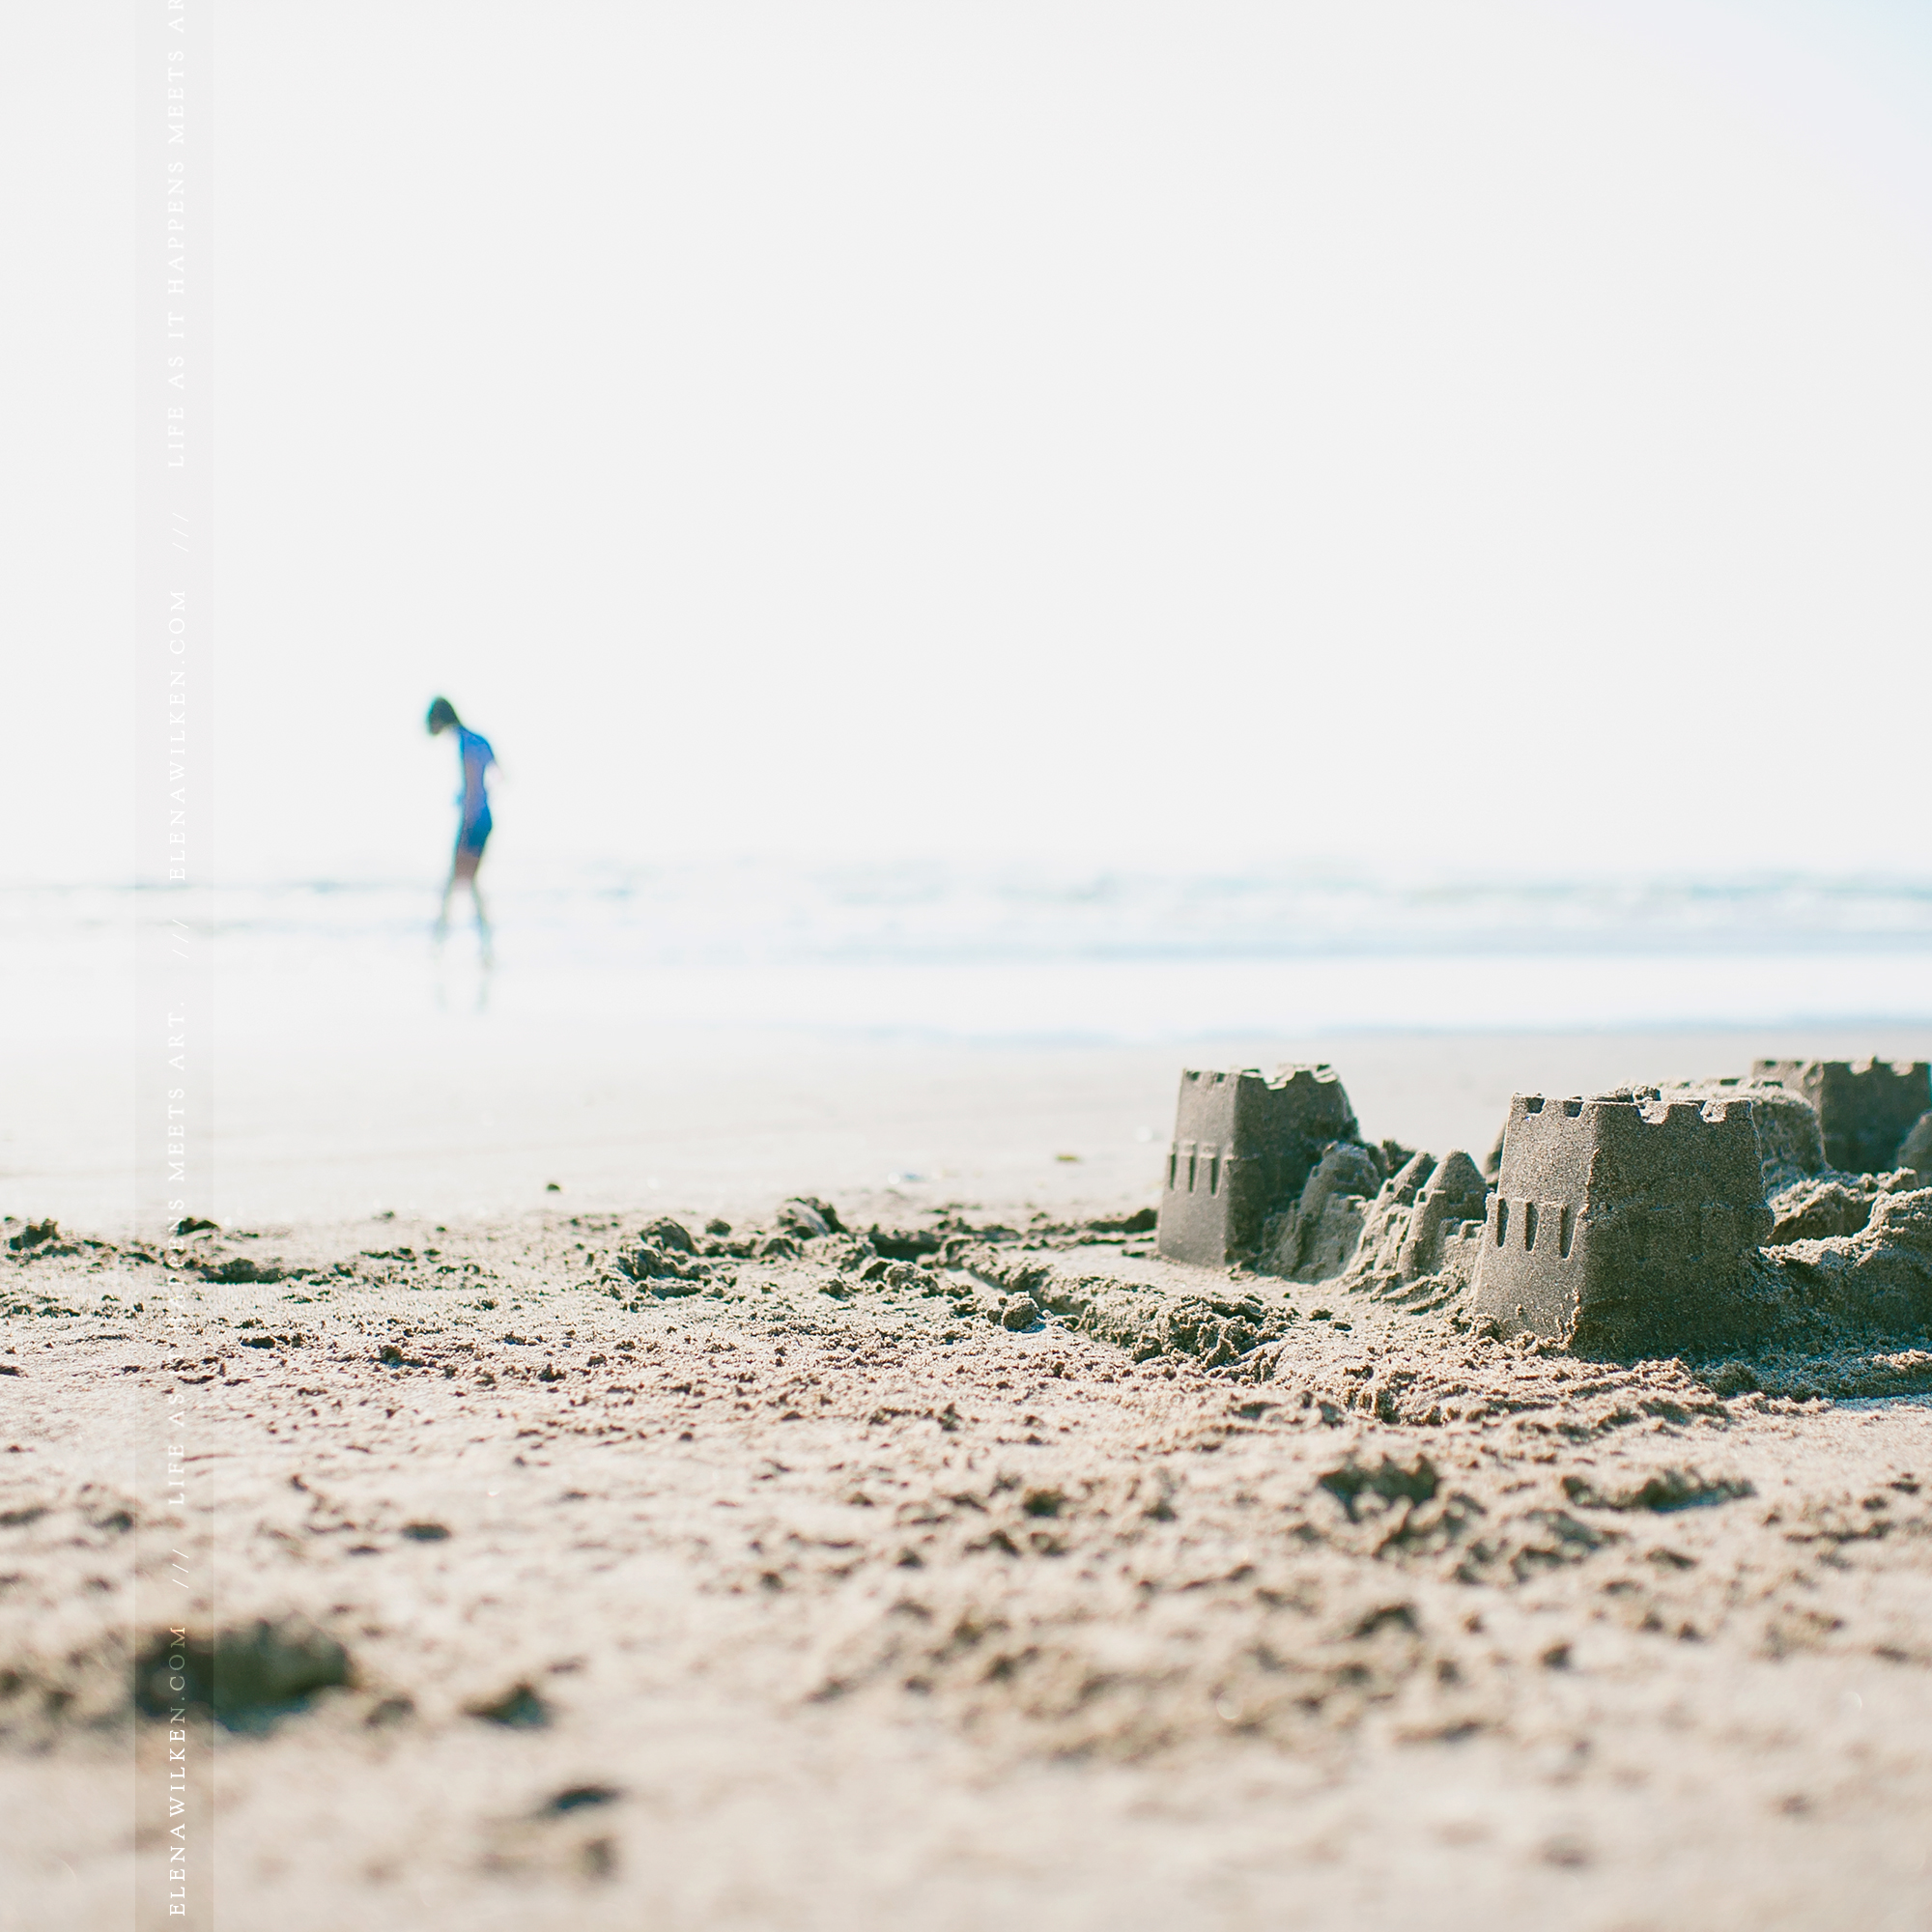 sand-castle-on-the-beach-oregon-coast-elena-wilken.jpg